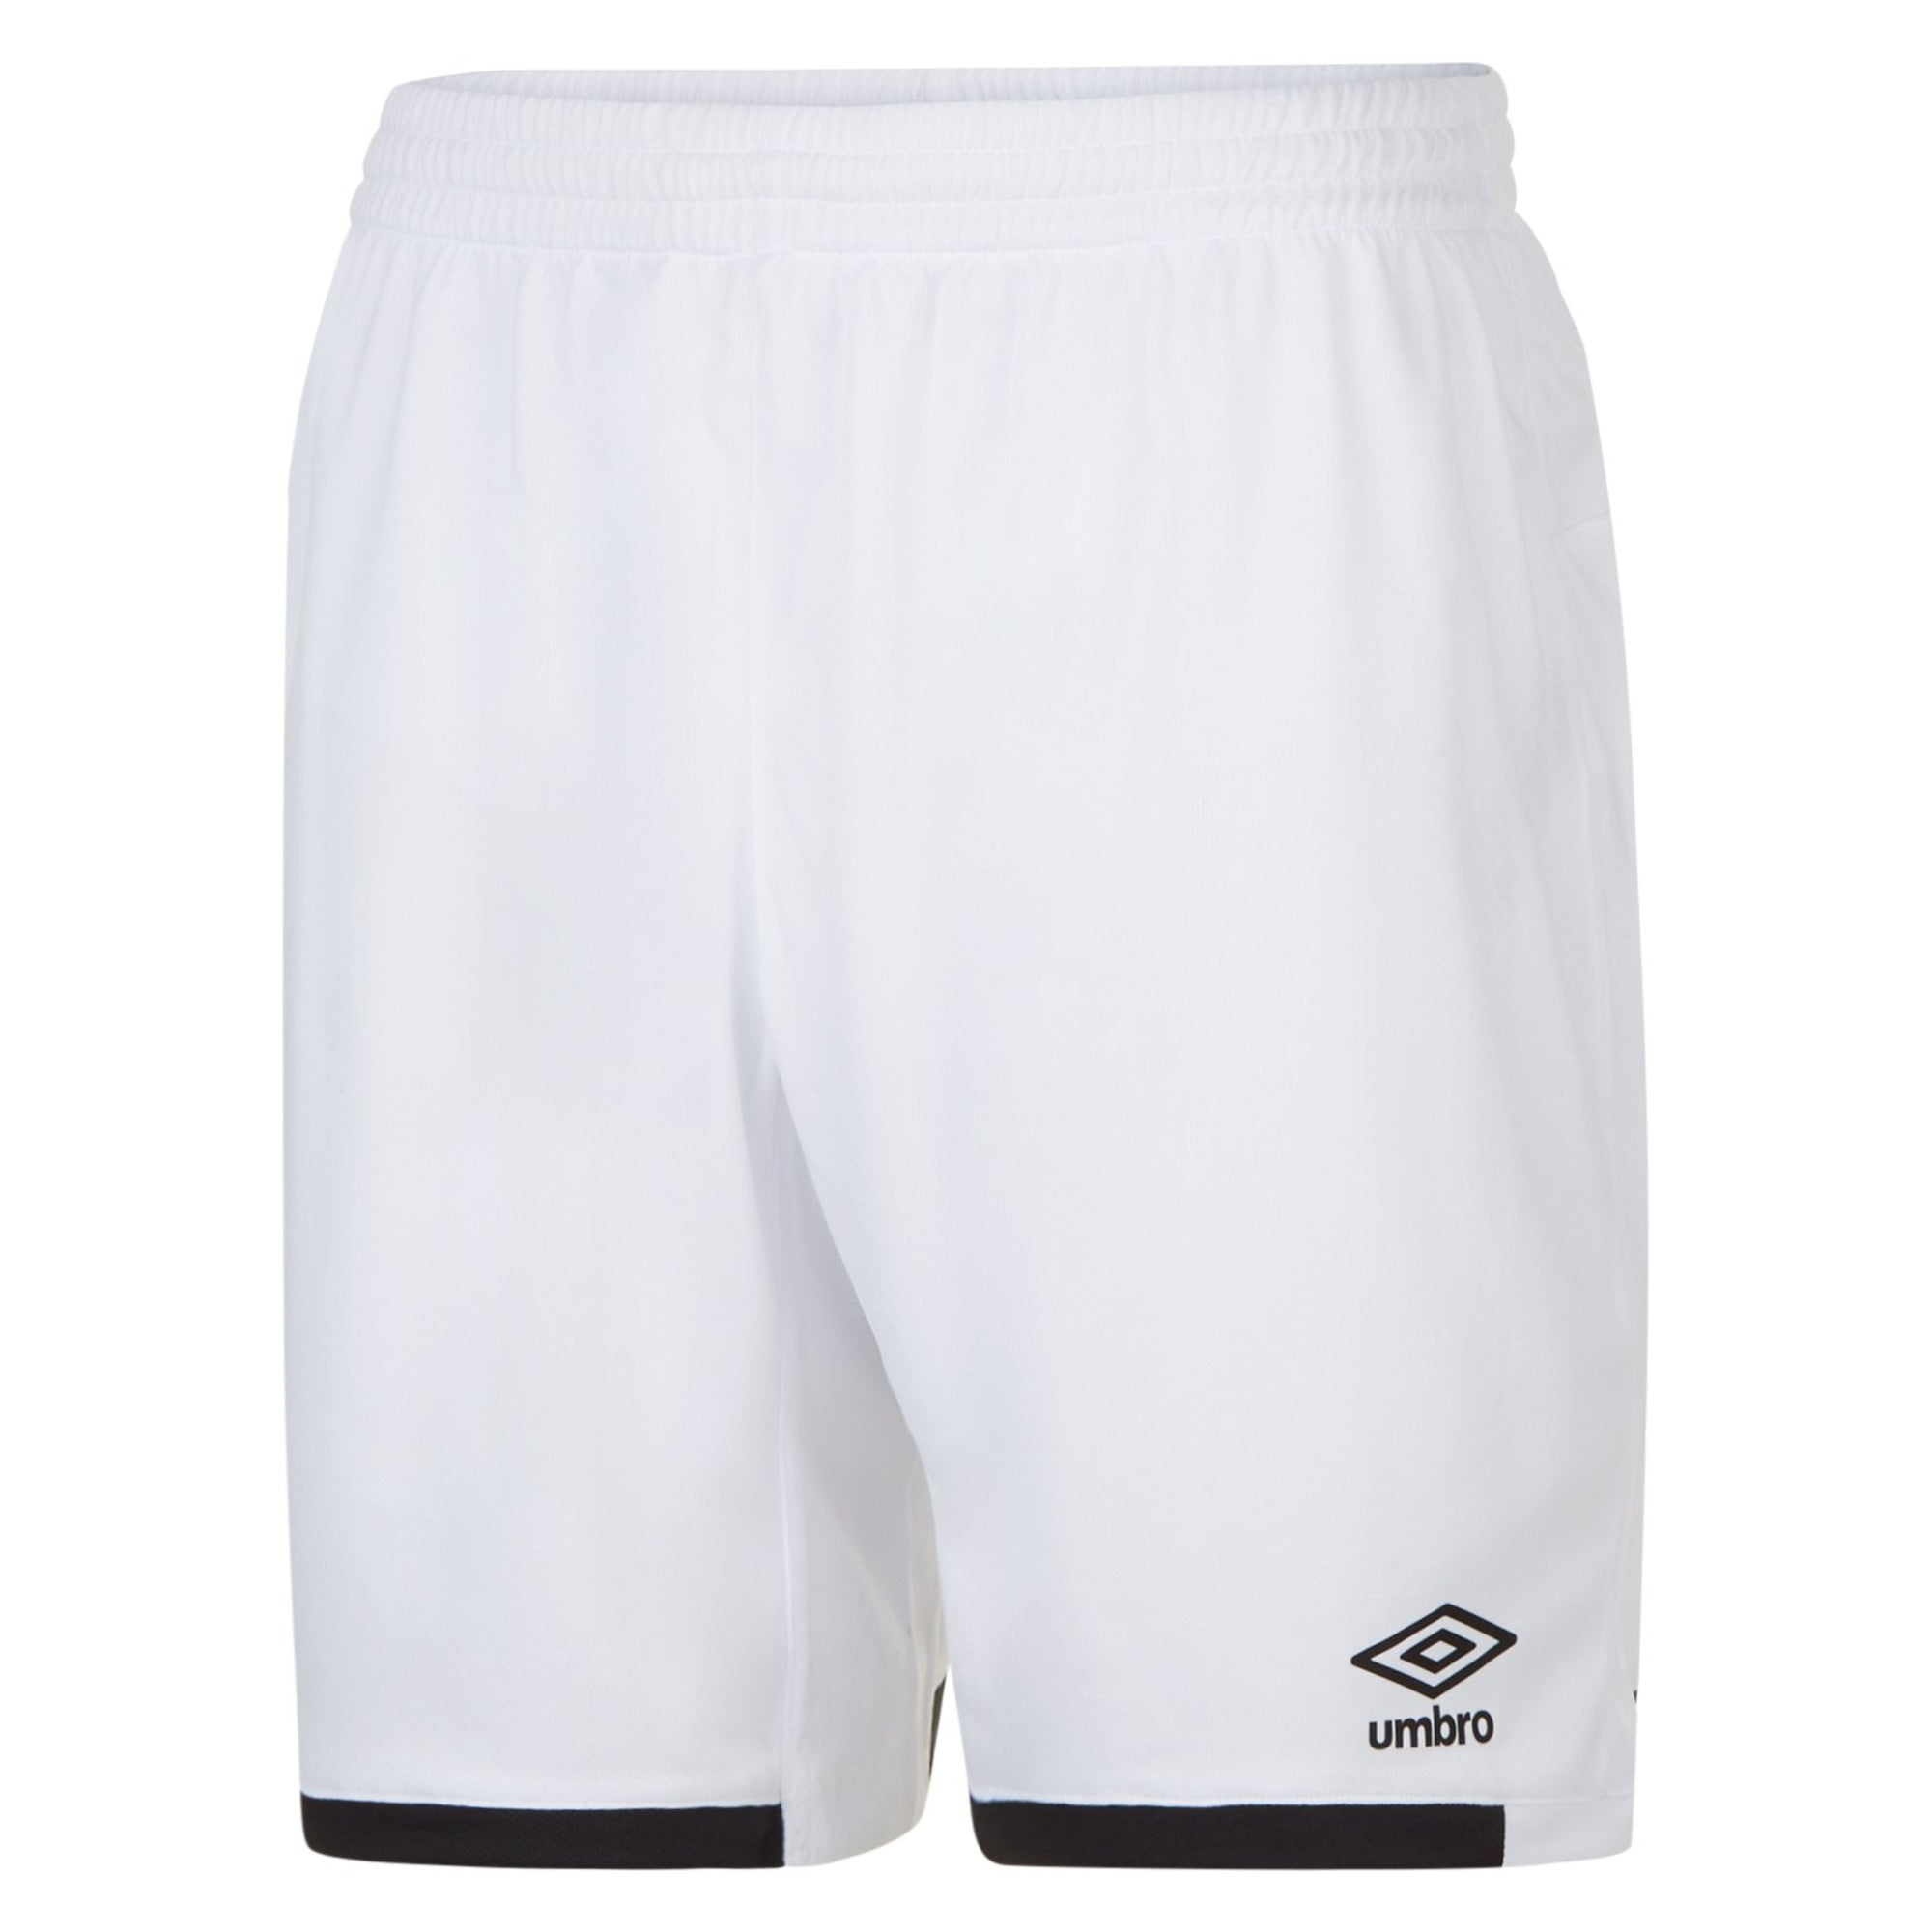 White Umbro Premier shorts with contrast black hems